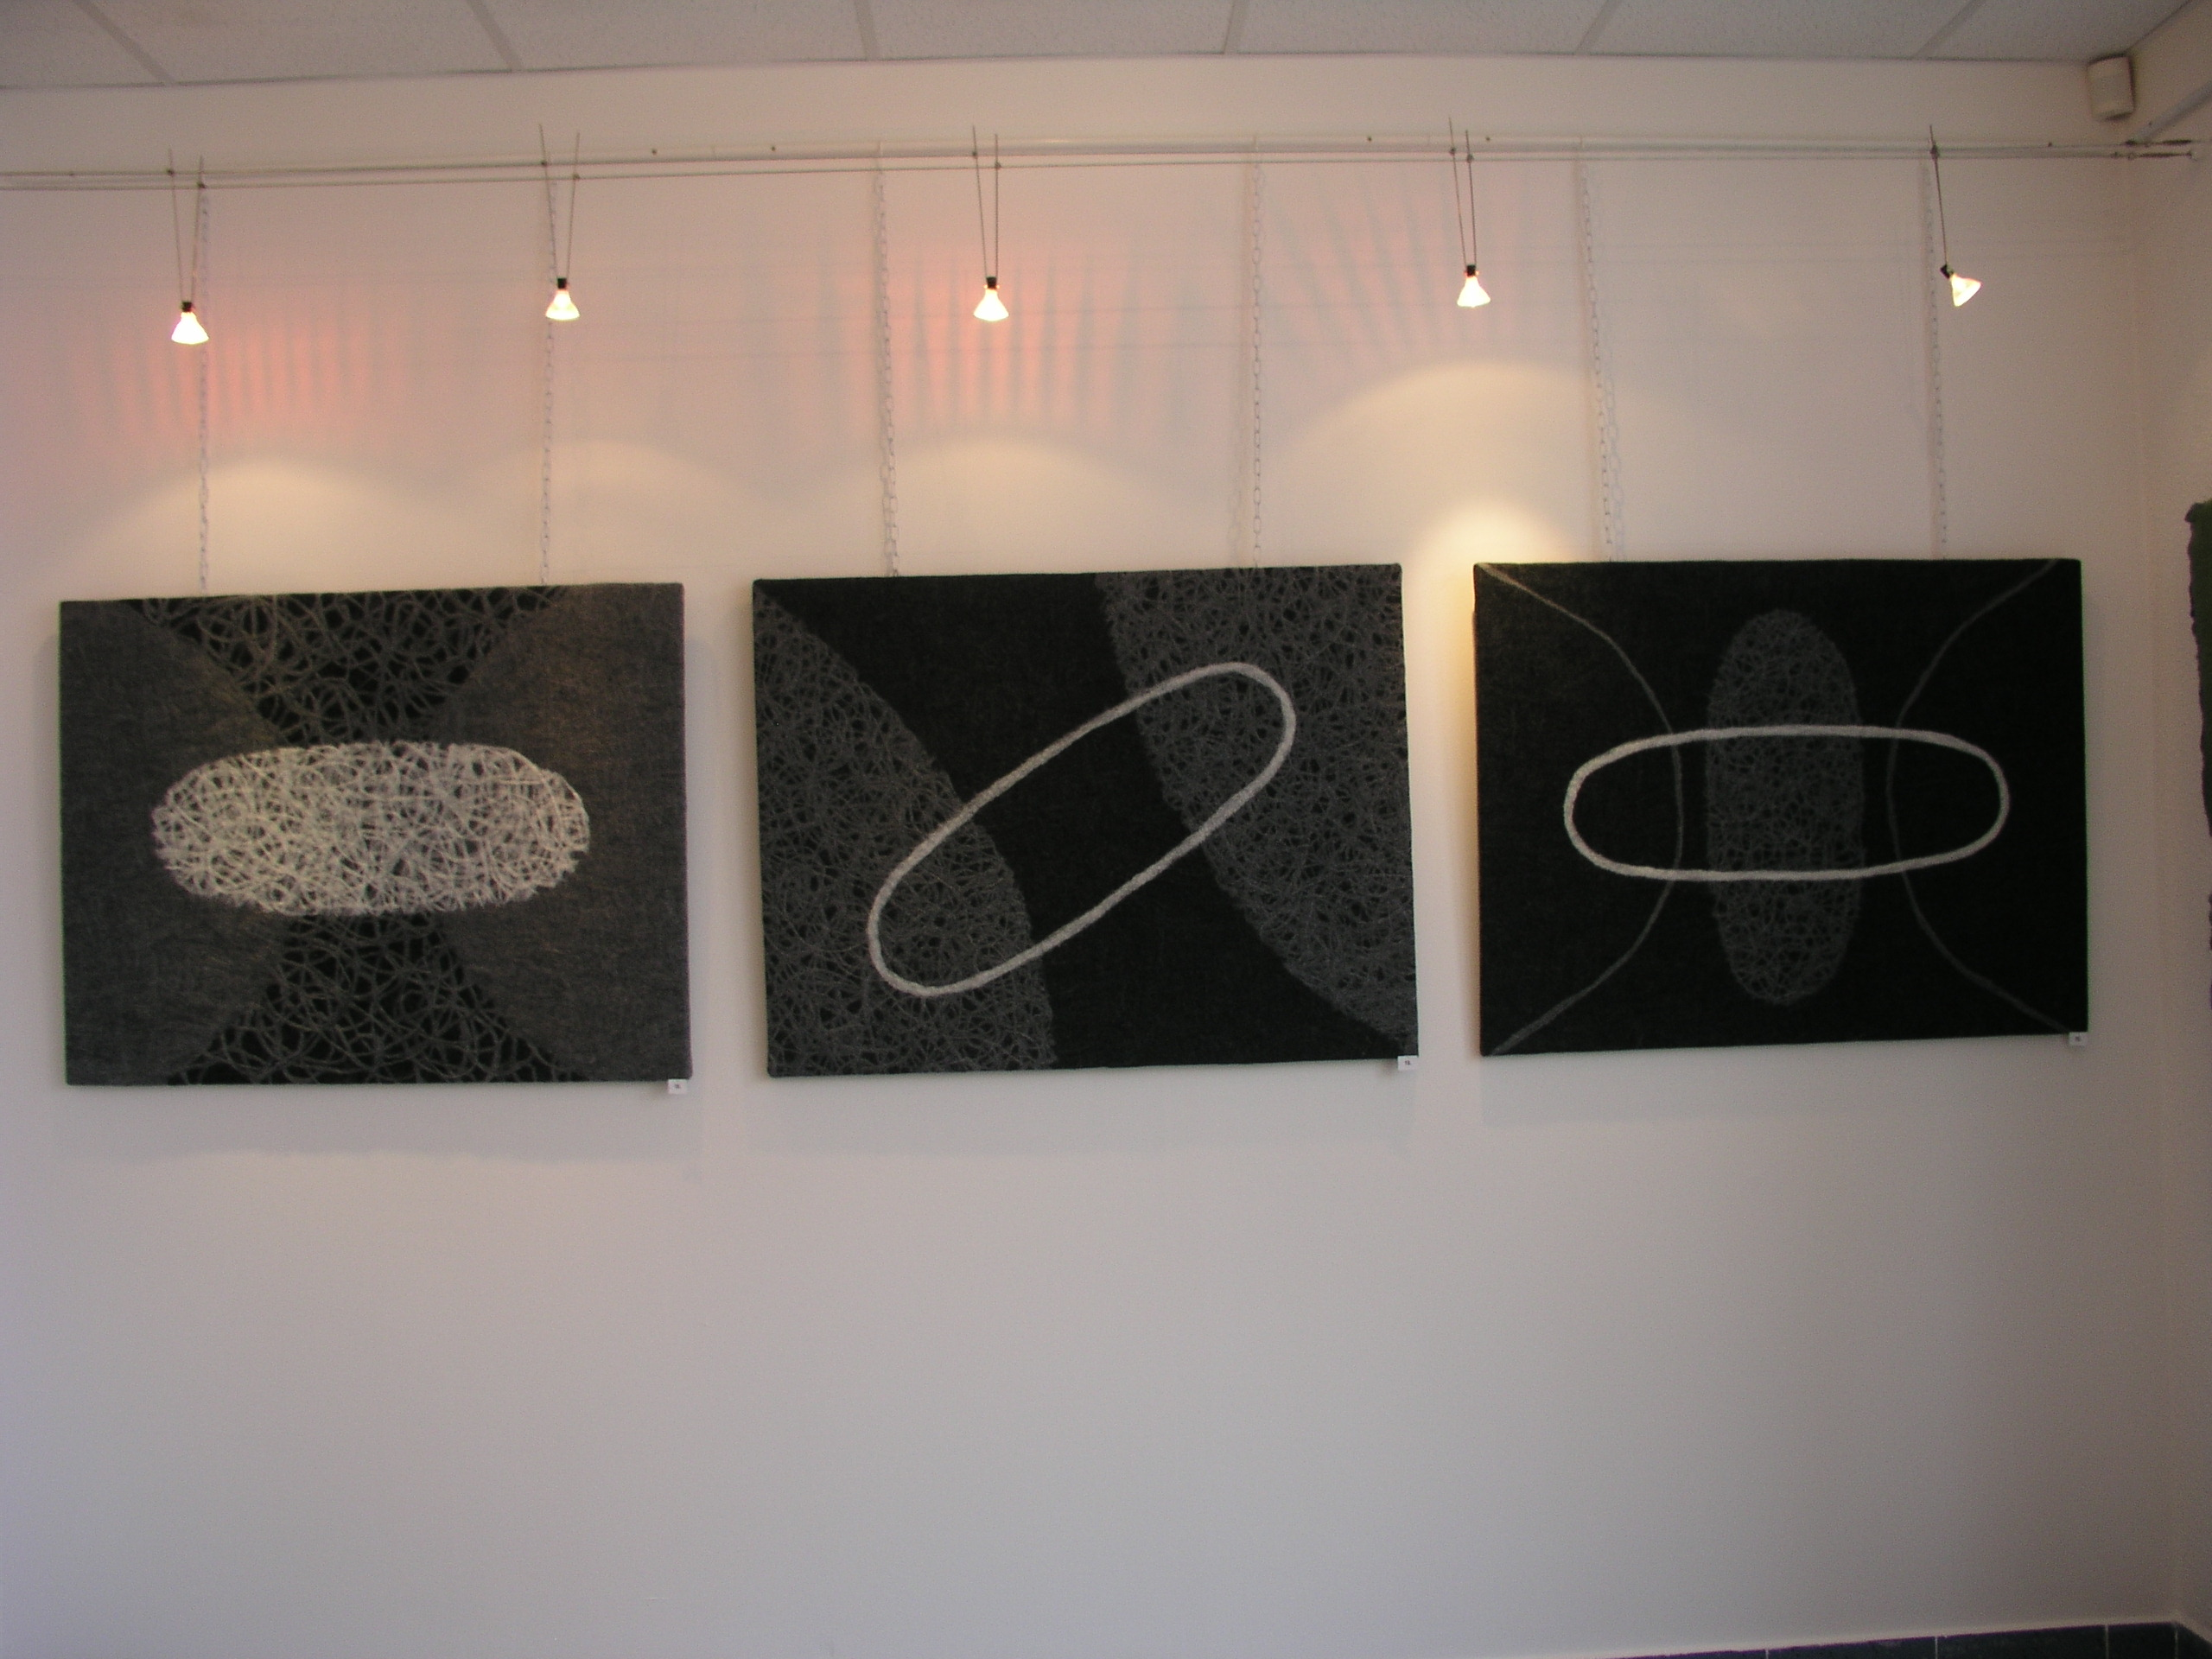 Linear space, 2004 (photo by Zuzana Hromadová)